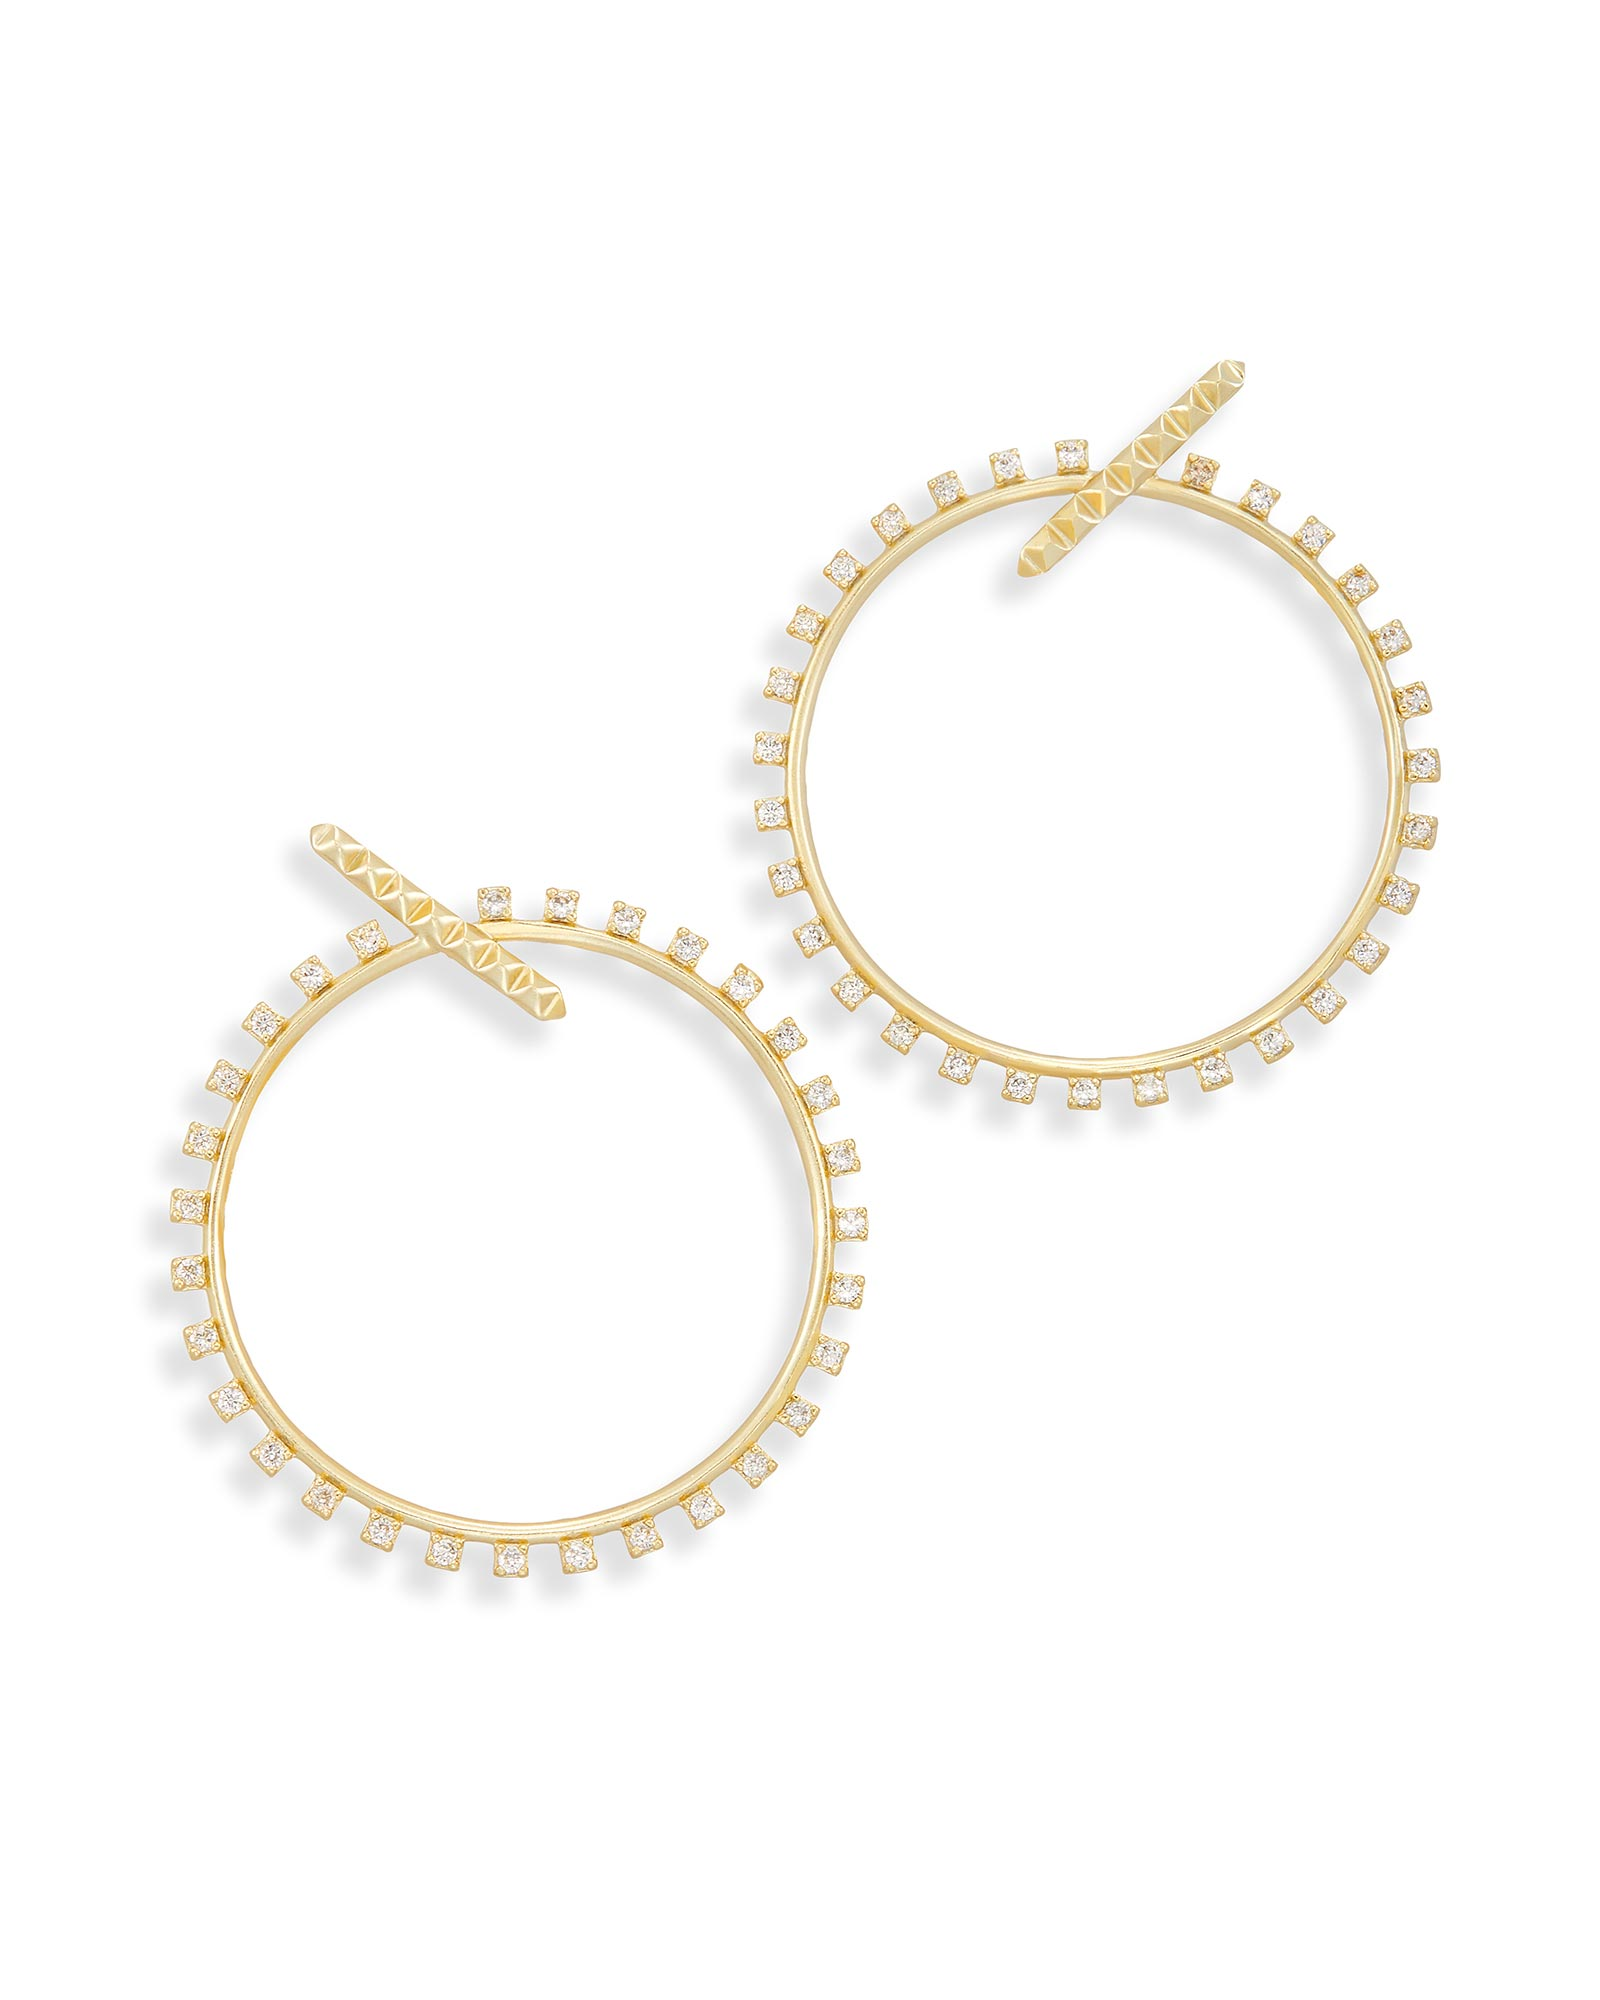 Charlie Grace Hoop Earrings in Gold